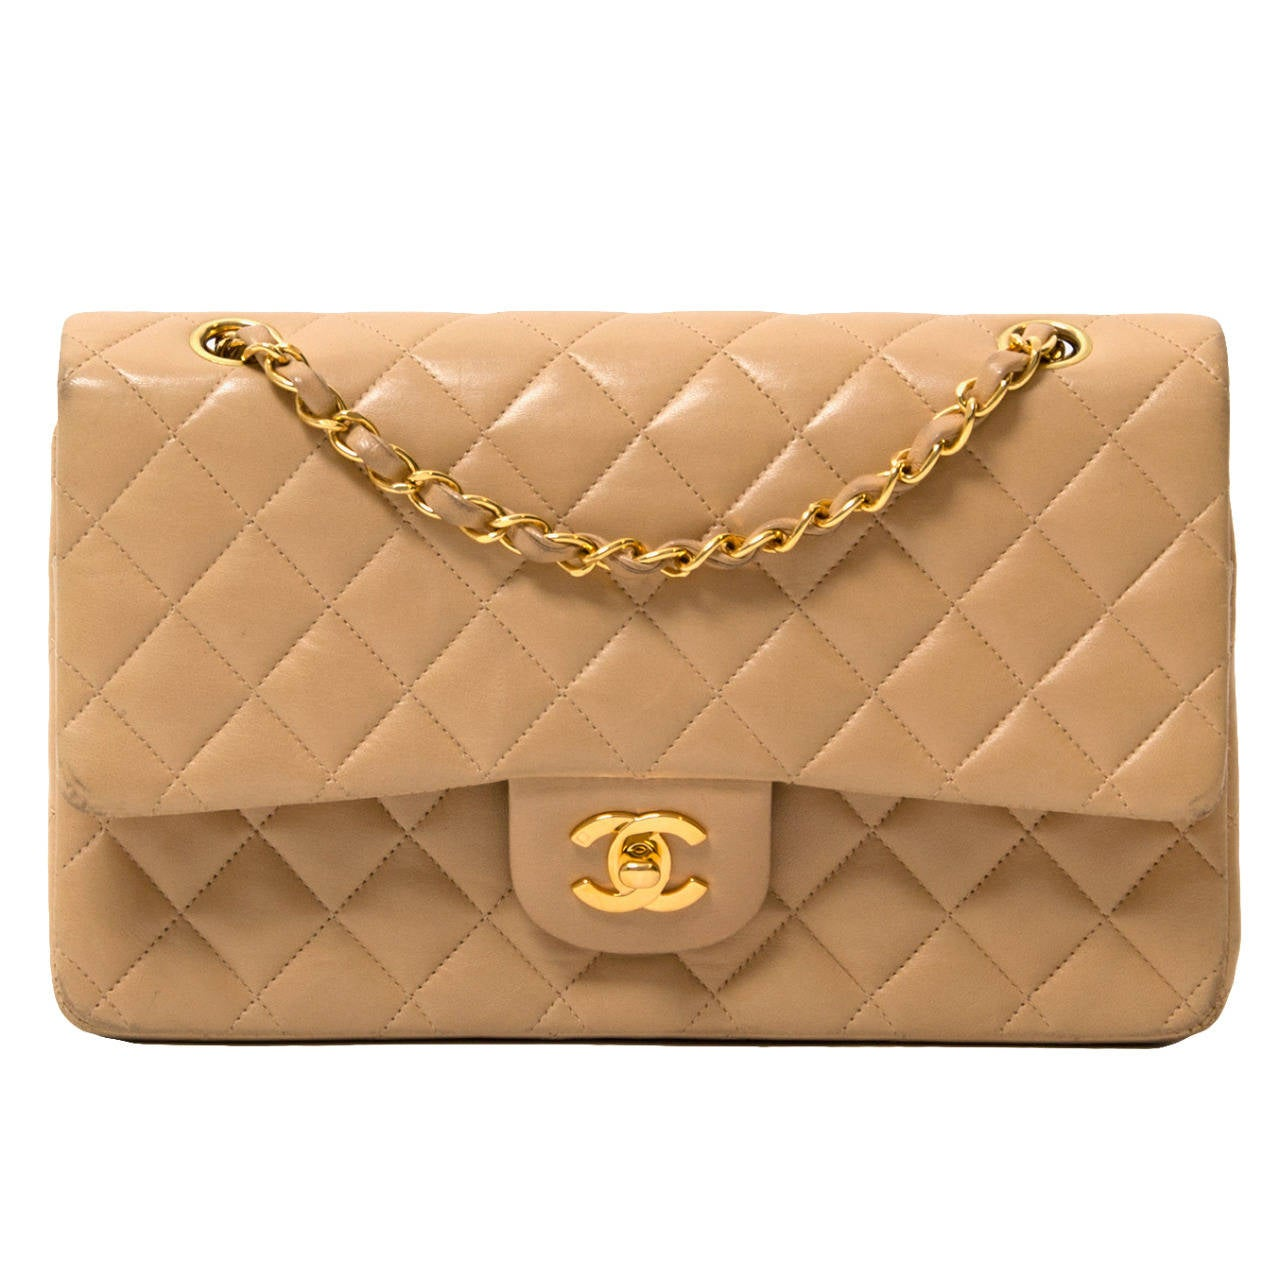 chanel beige lambskin medium double flap bag at 1stdibs